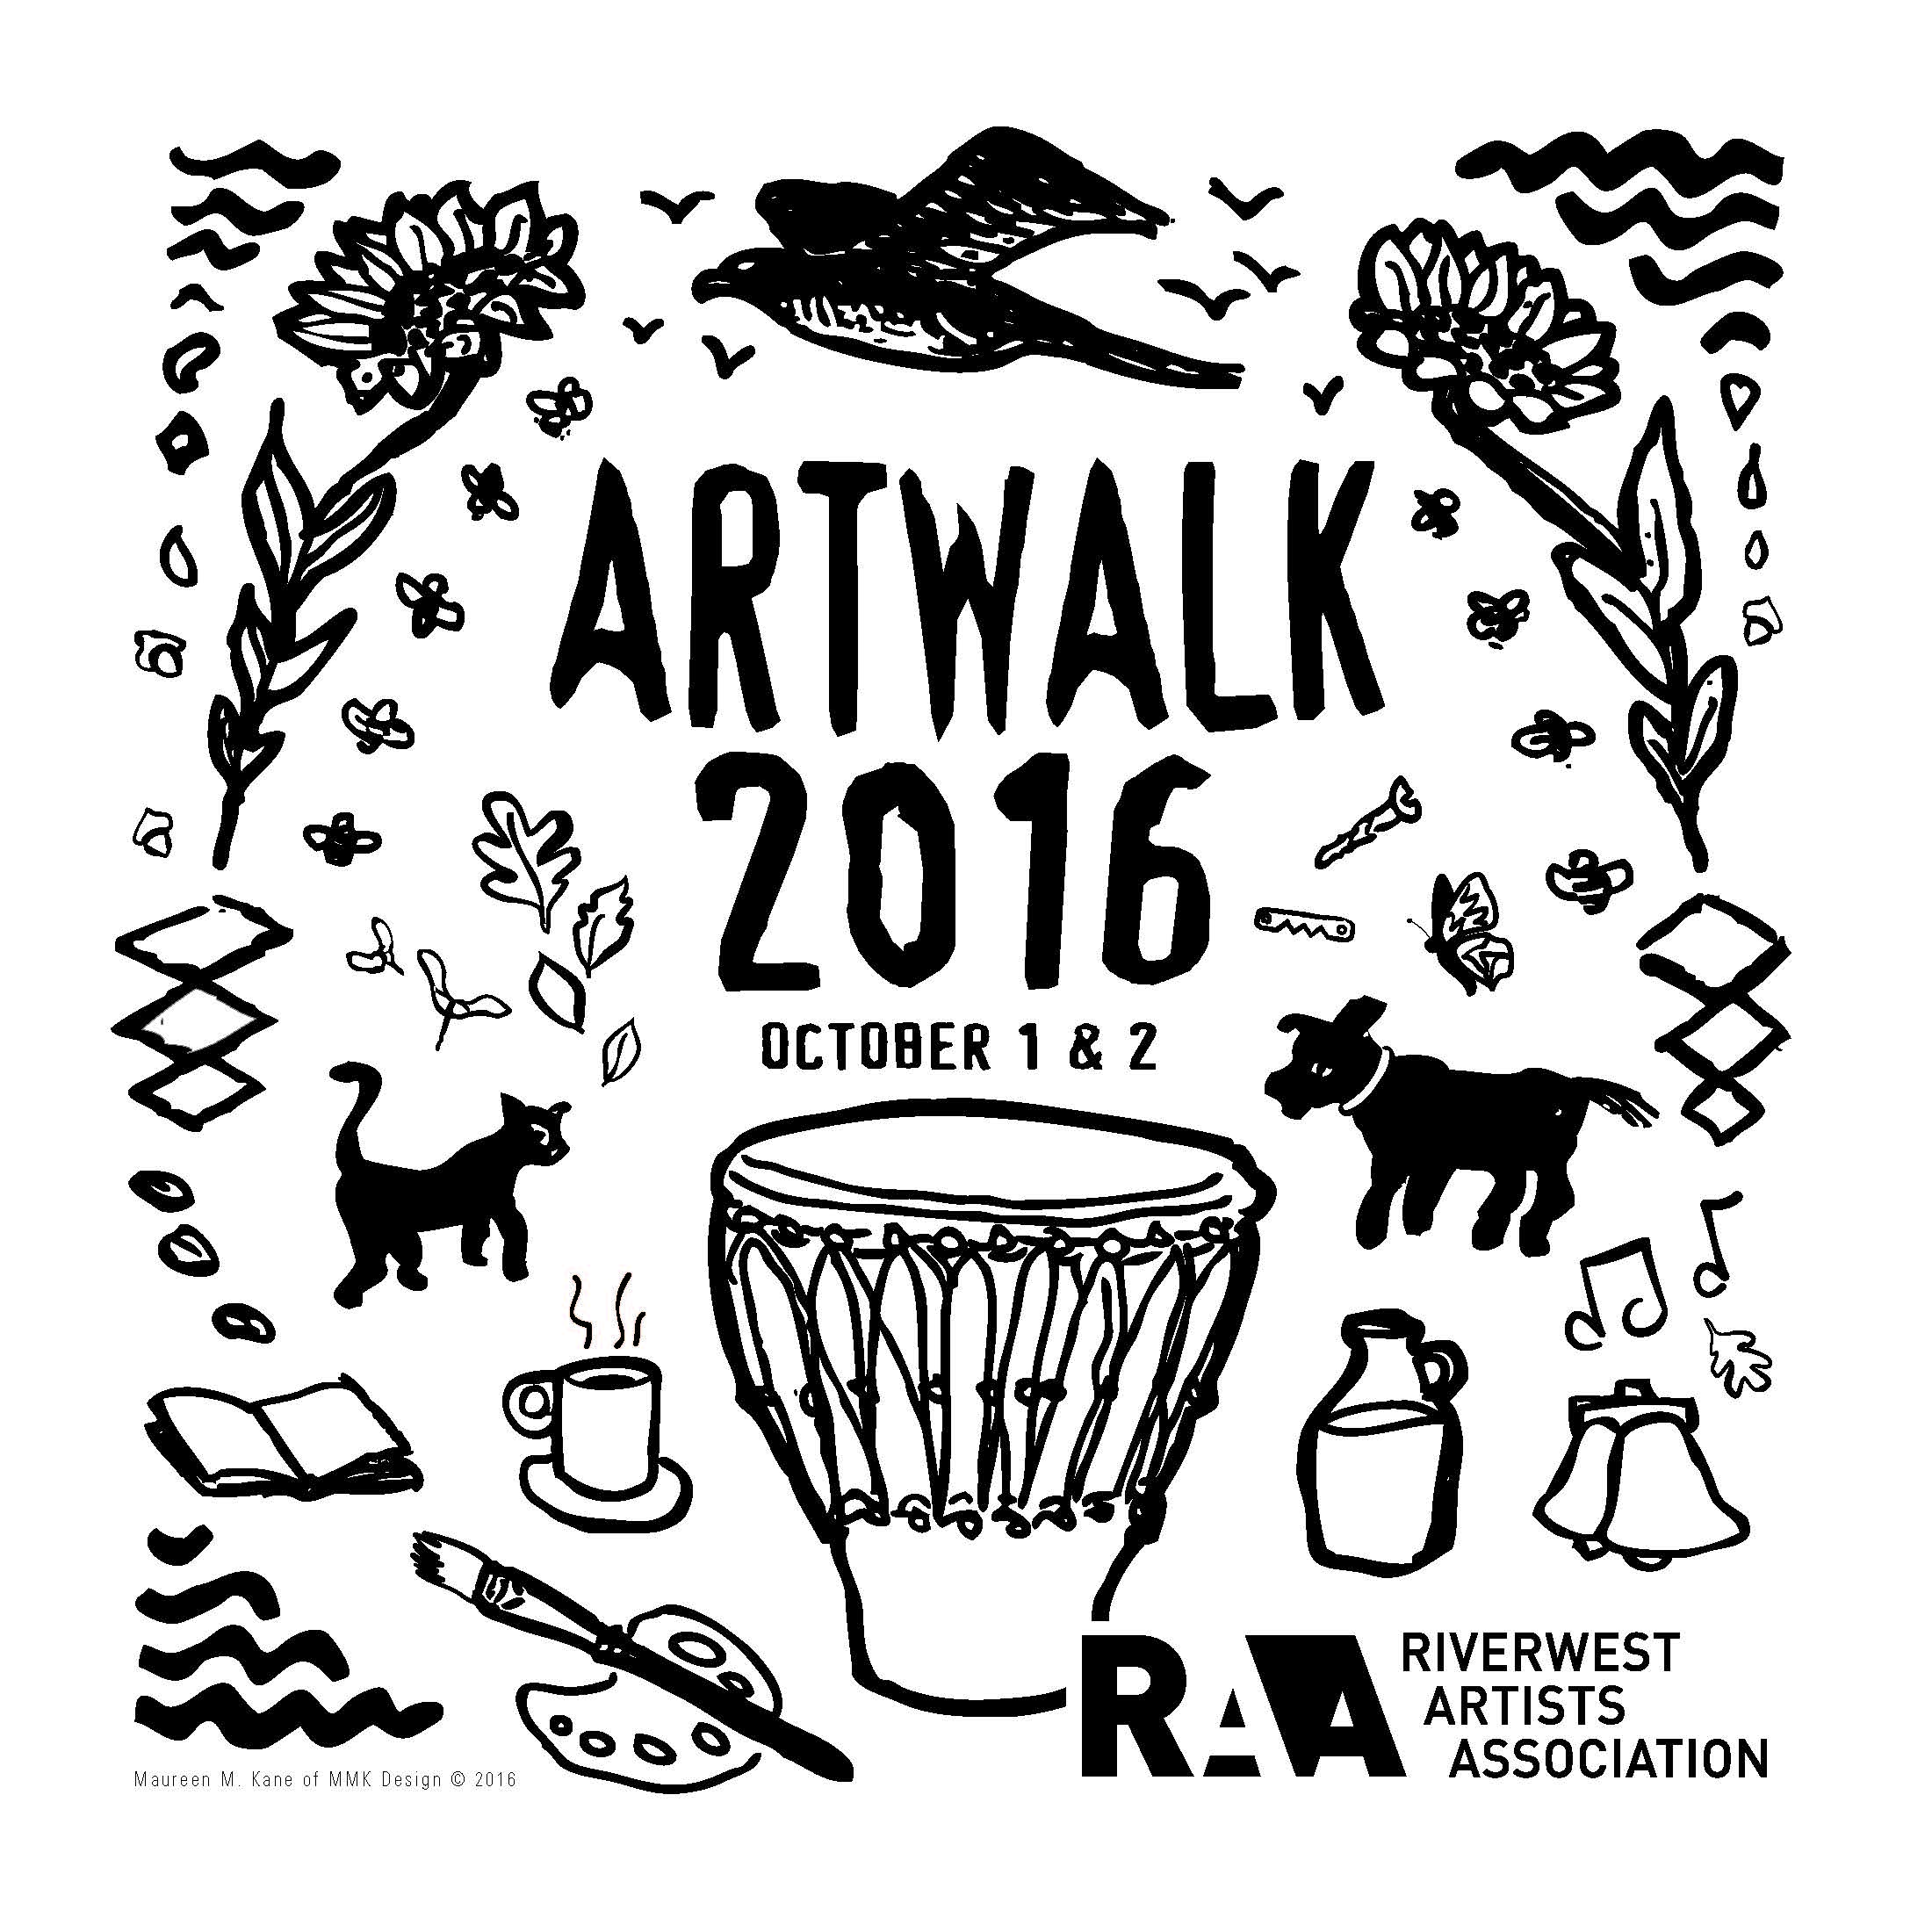 2016ARTWALK logo.jpg